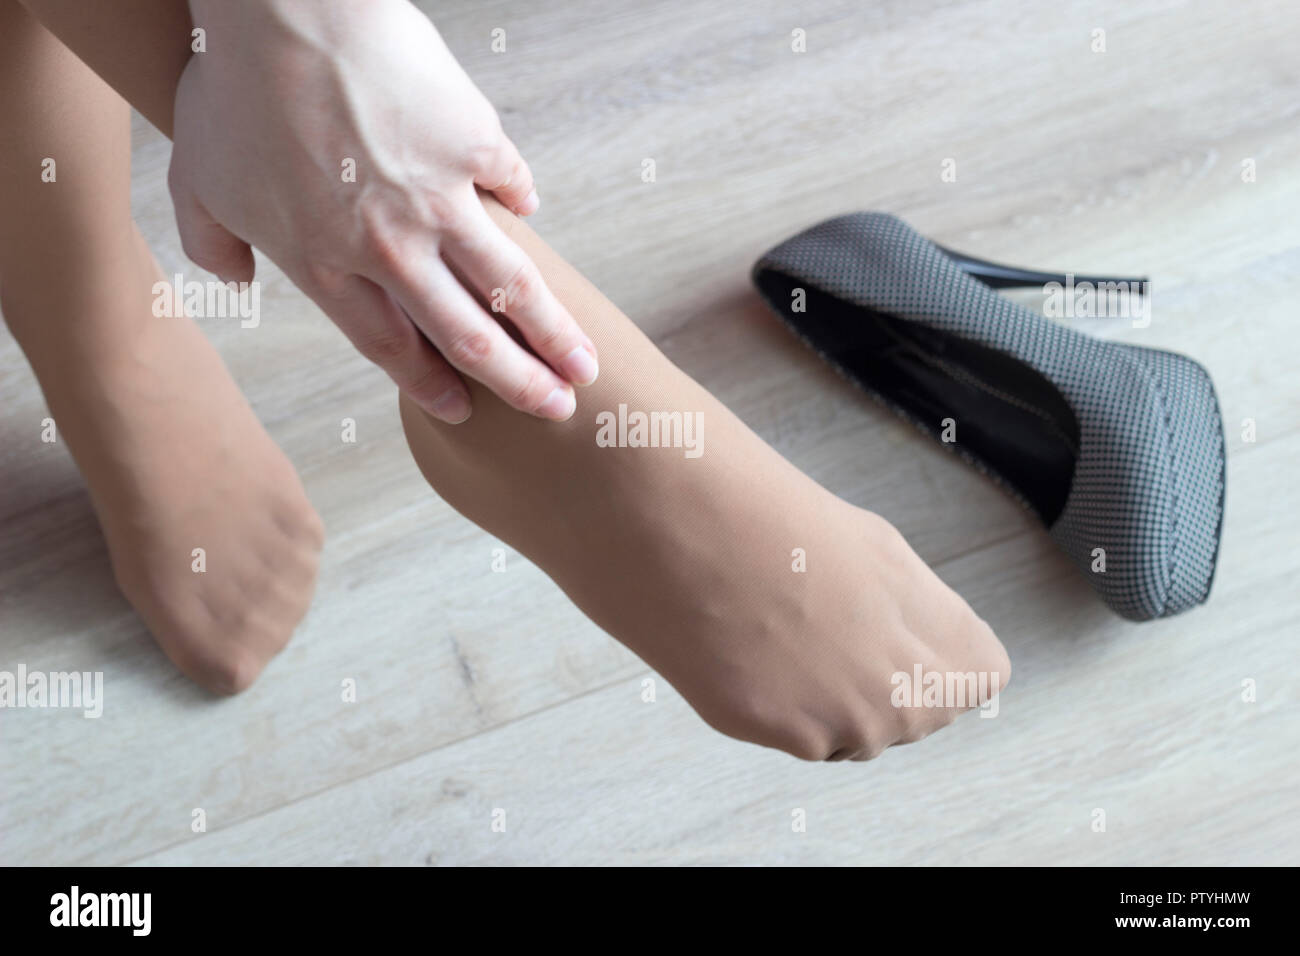 A girl clings to her leg, fatigue from her heels, high heels, pain in her legs, close-up - Stock Image